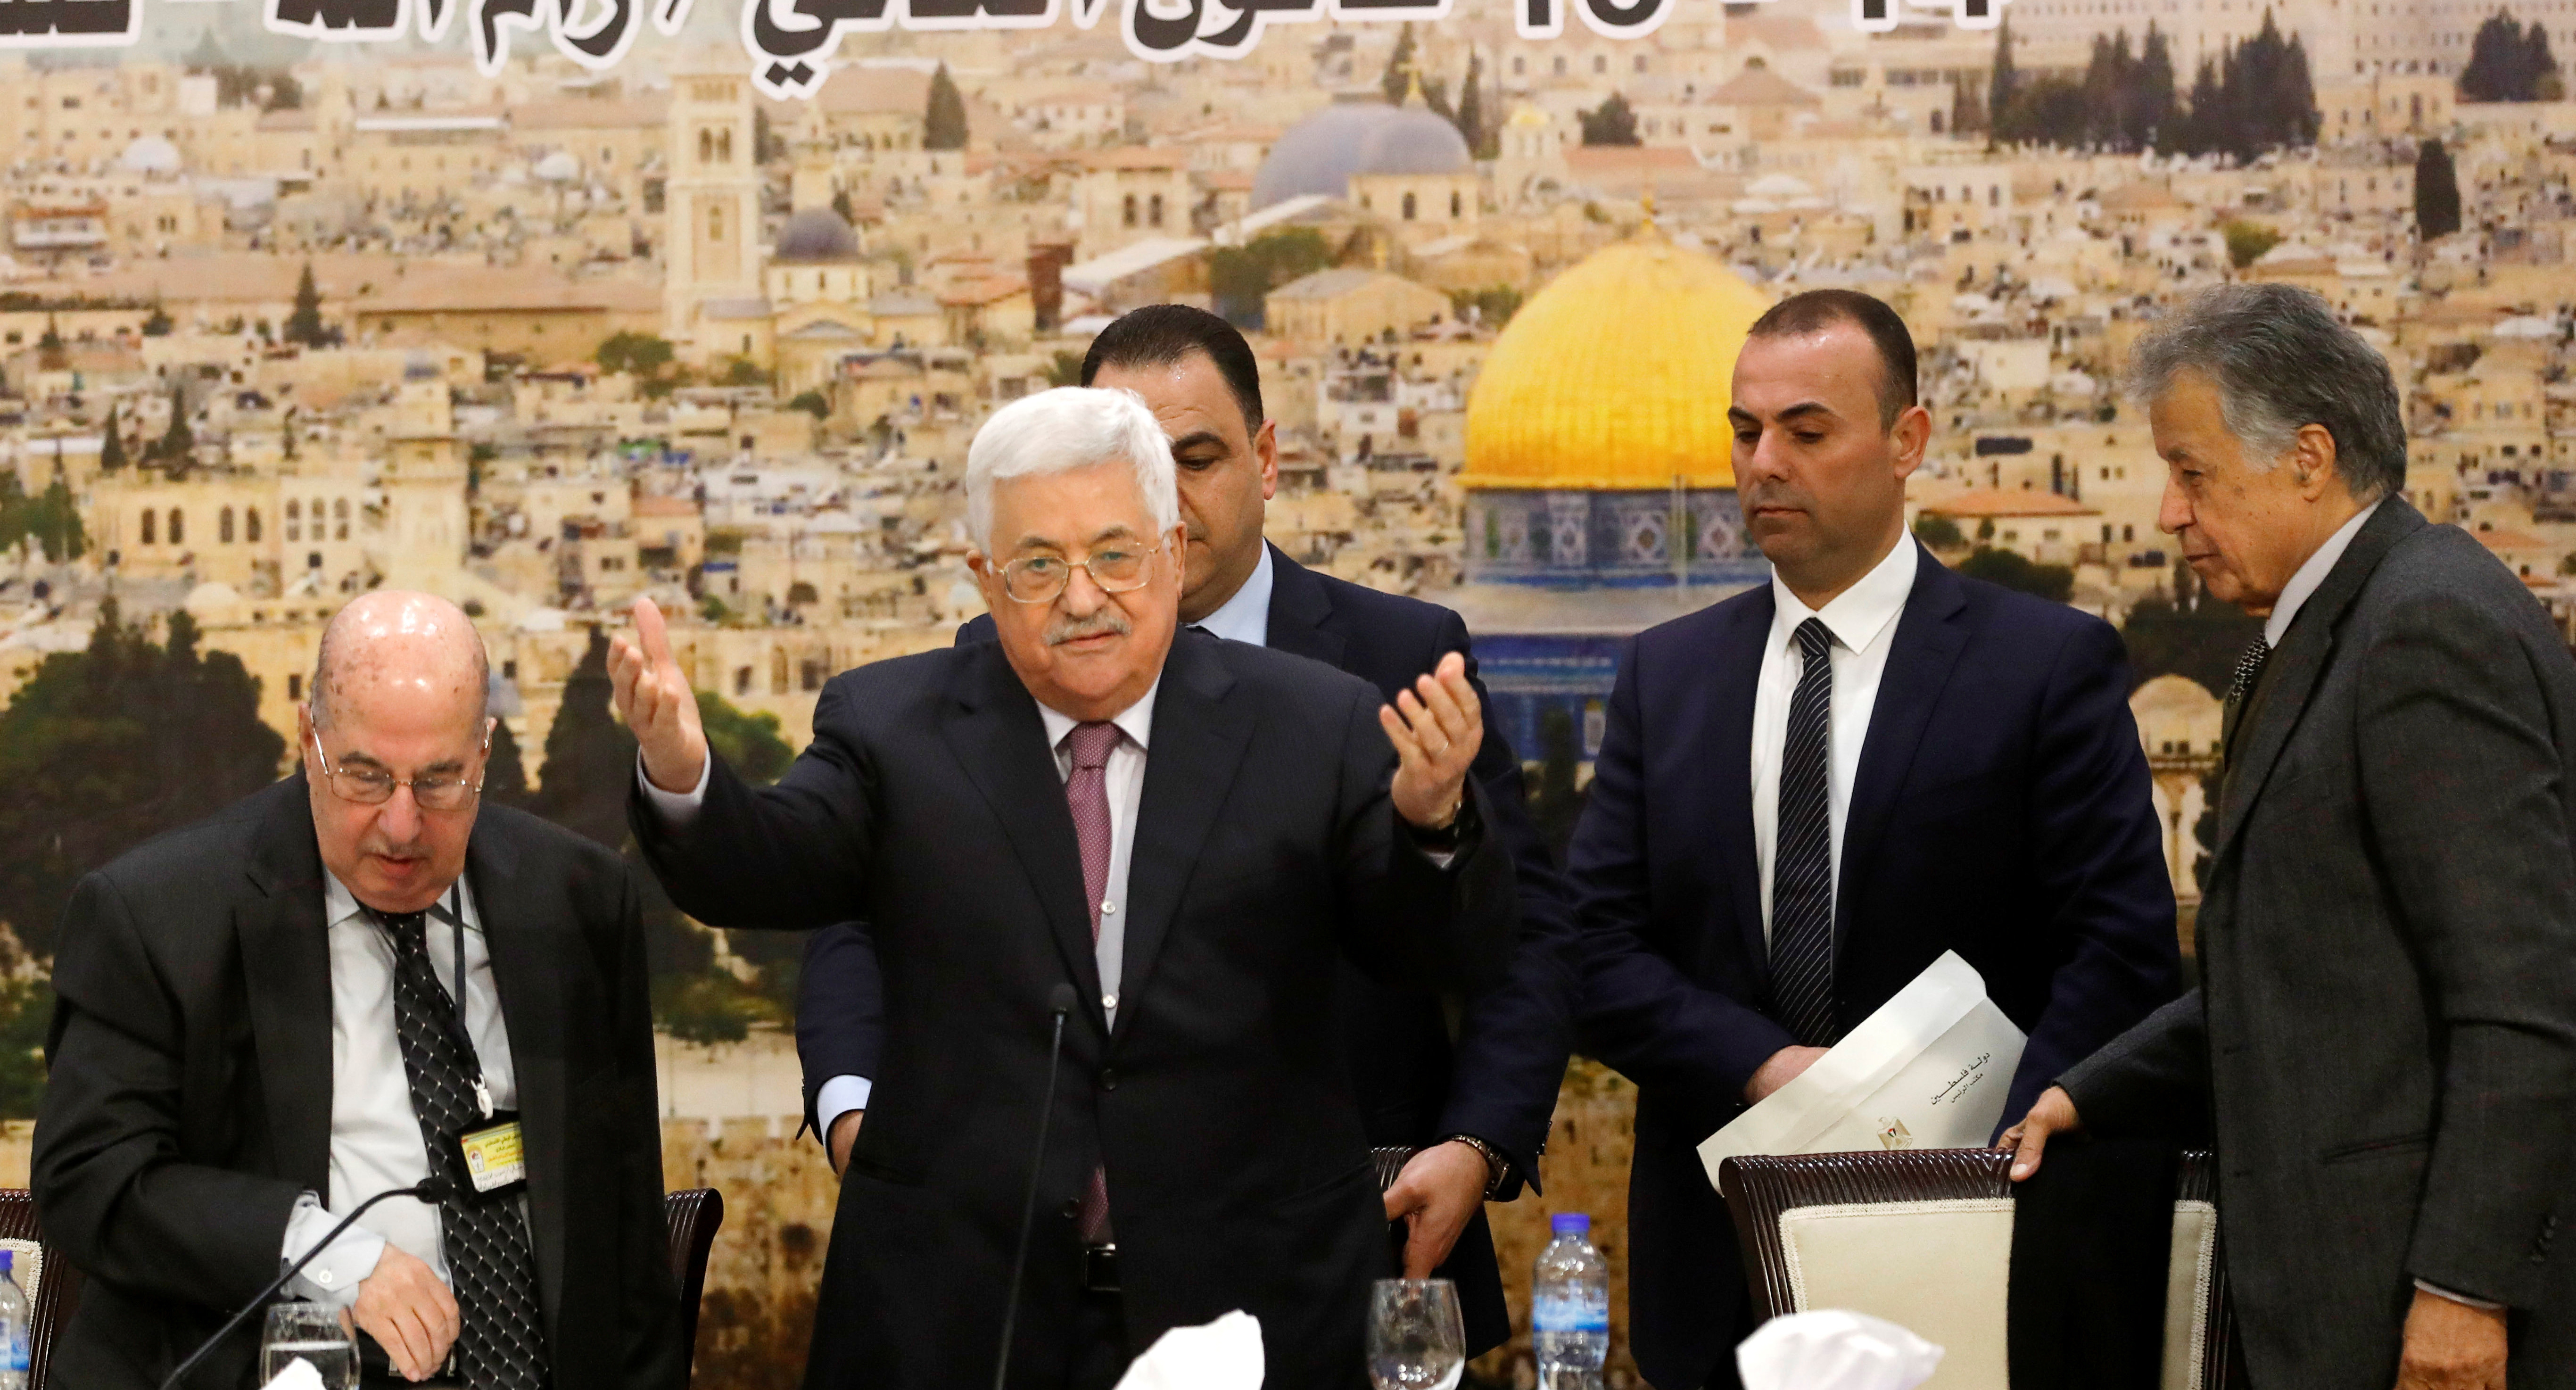 Palestinian President Mahmoud Abbas arrives to attend the meeting of the Palestinian Central Council in the West Bank city of Ramallah January 14, 2018 (Reuters)